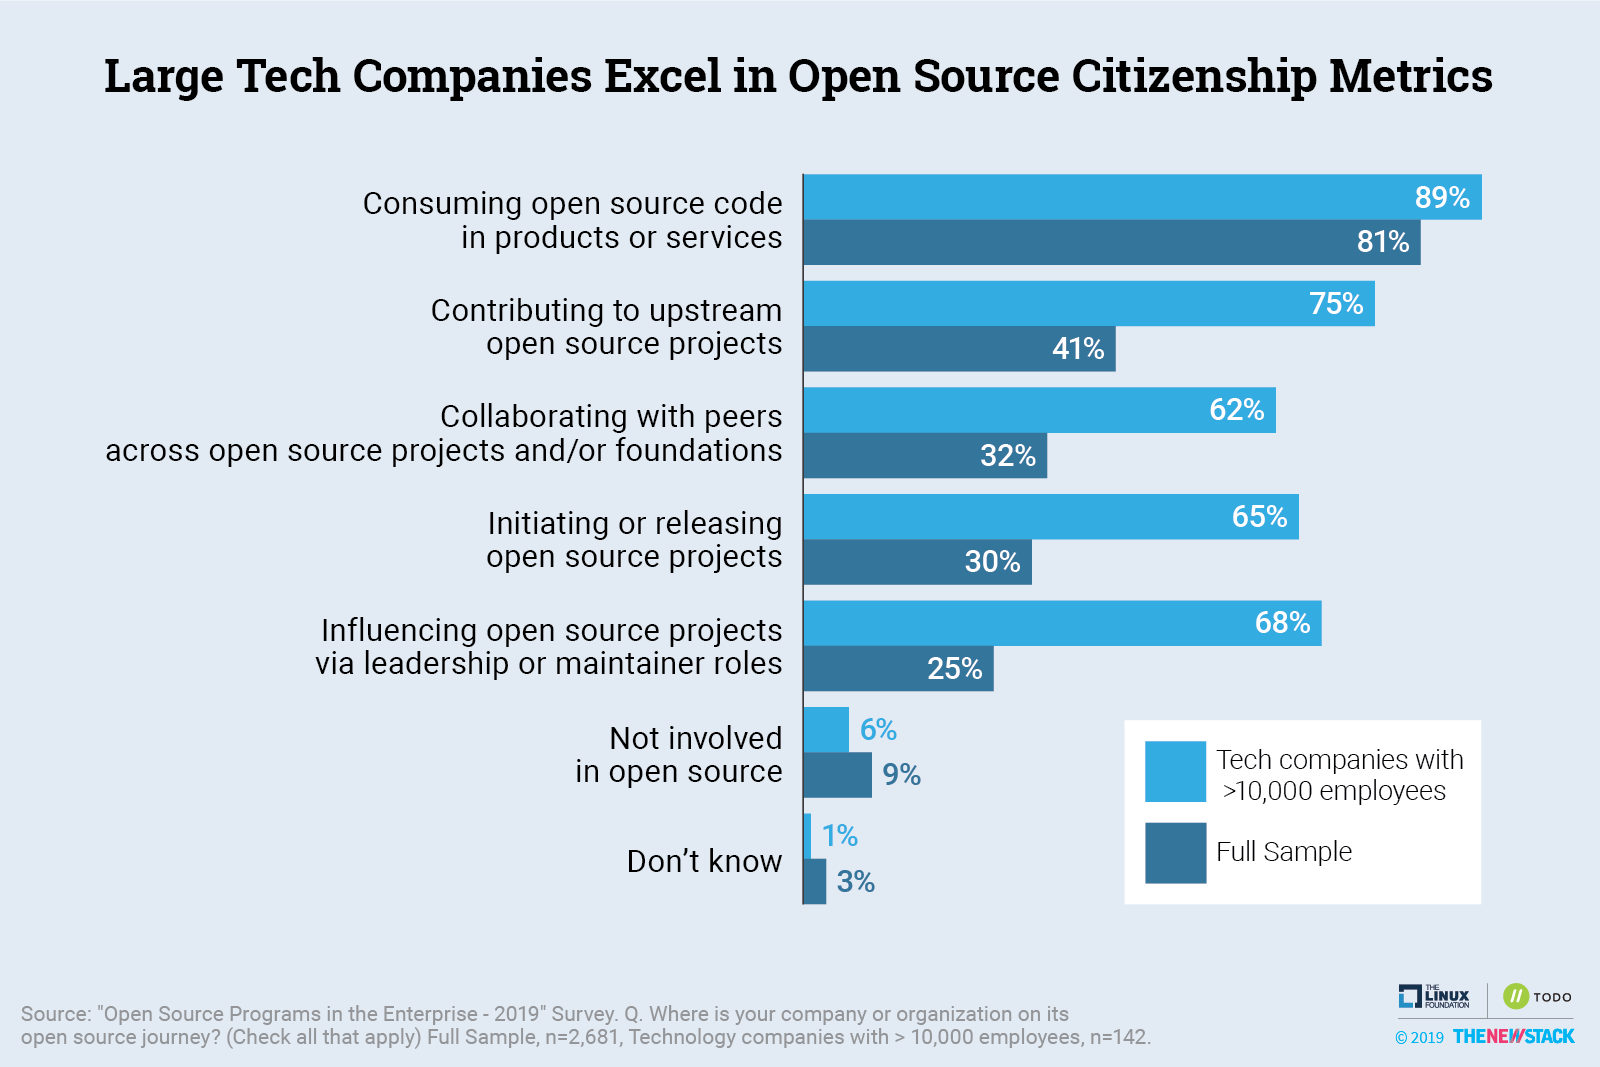 Large Tech Companies Excel in Open Source Citizenship Metrics